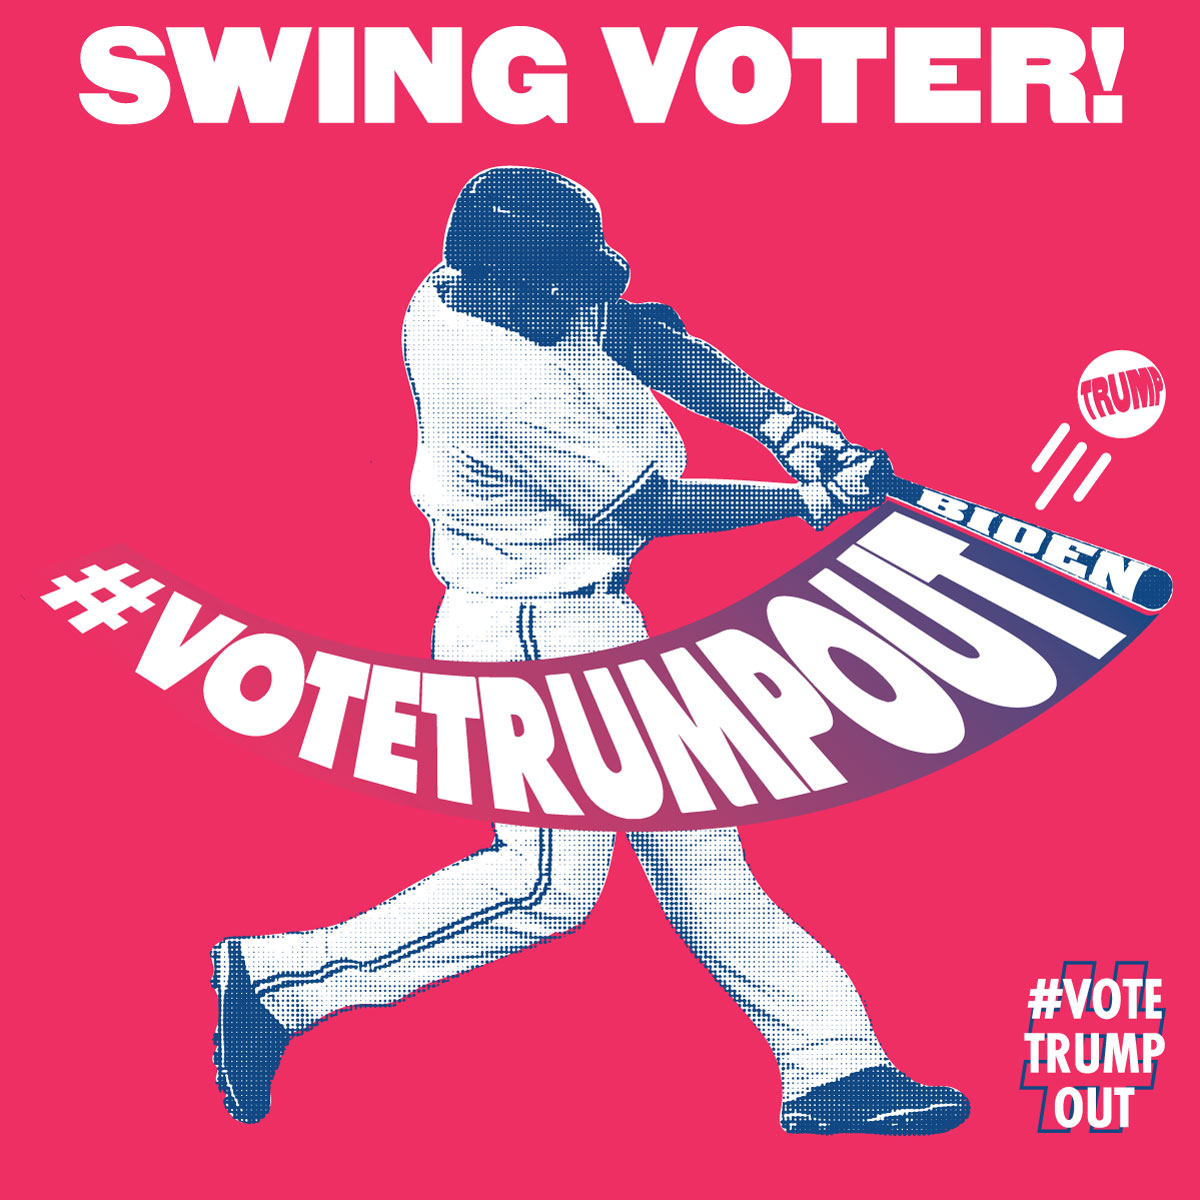 Swing voter image